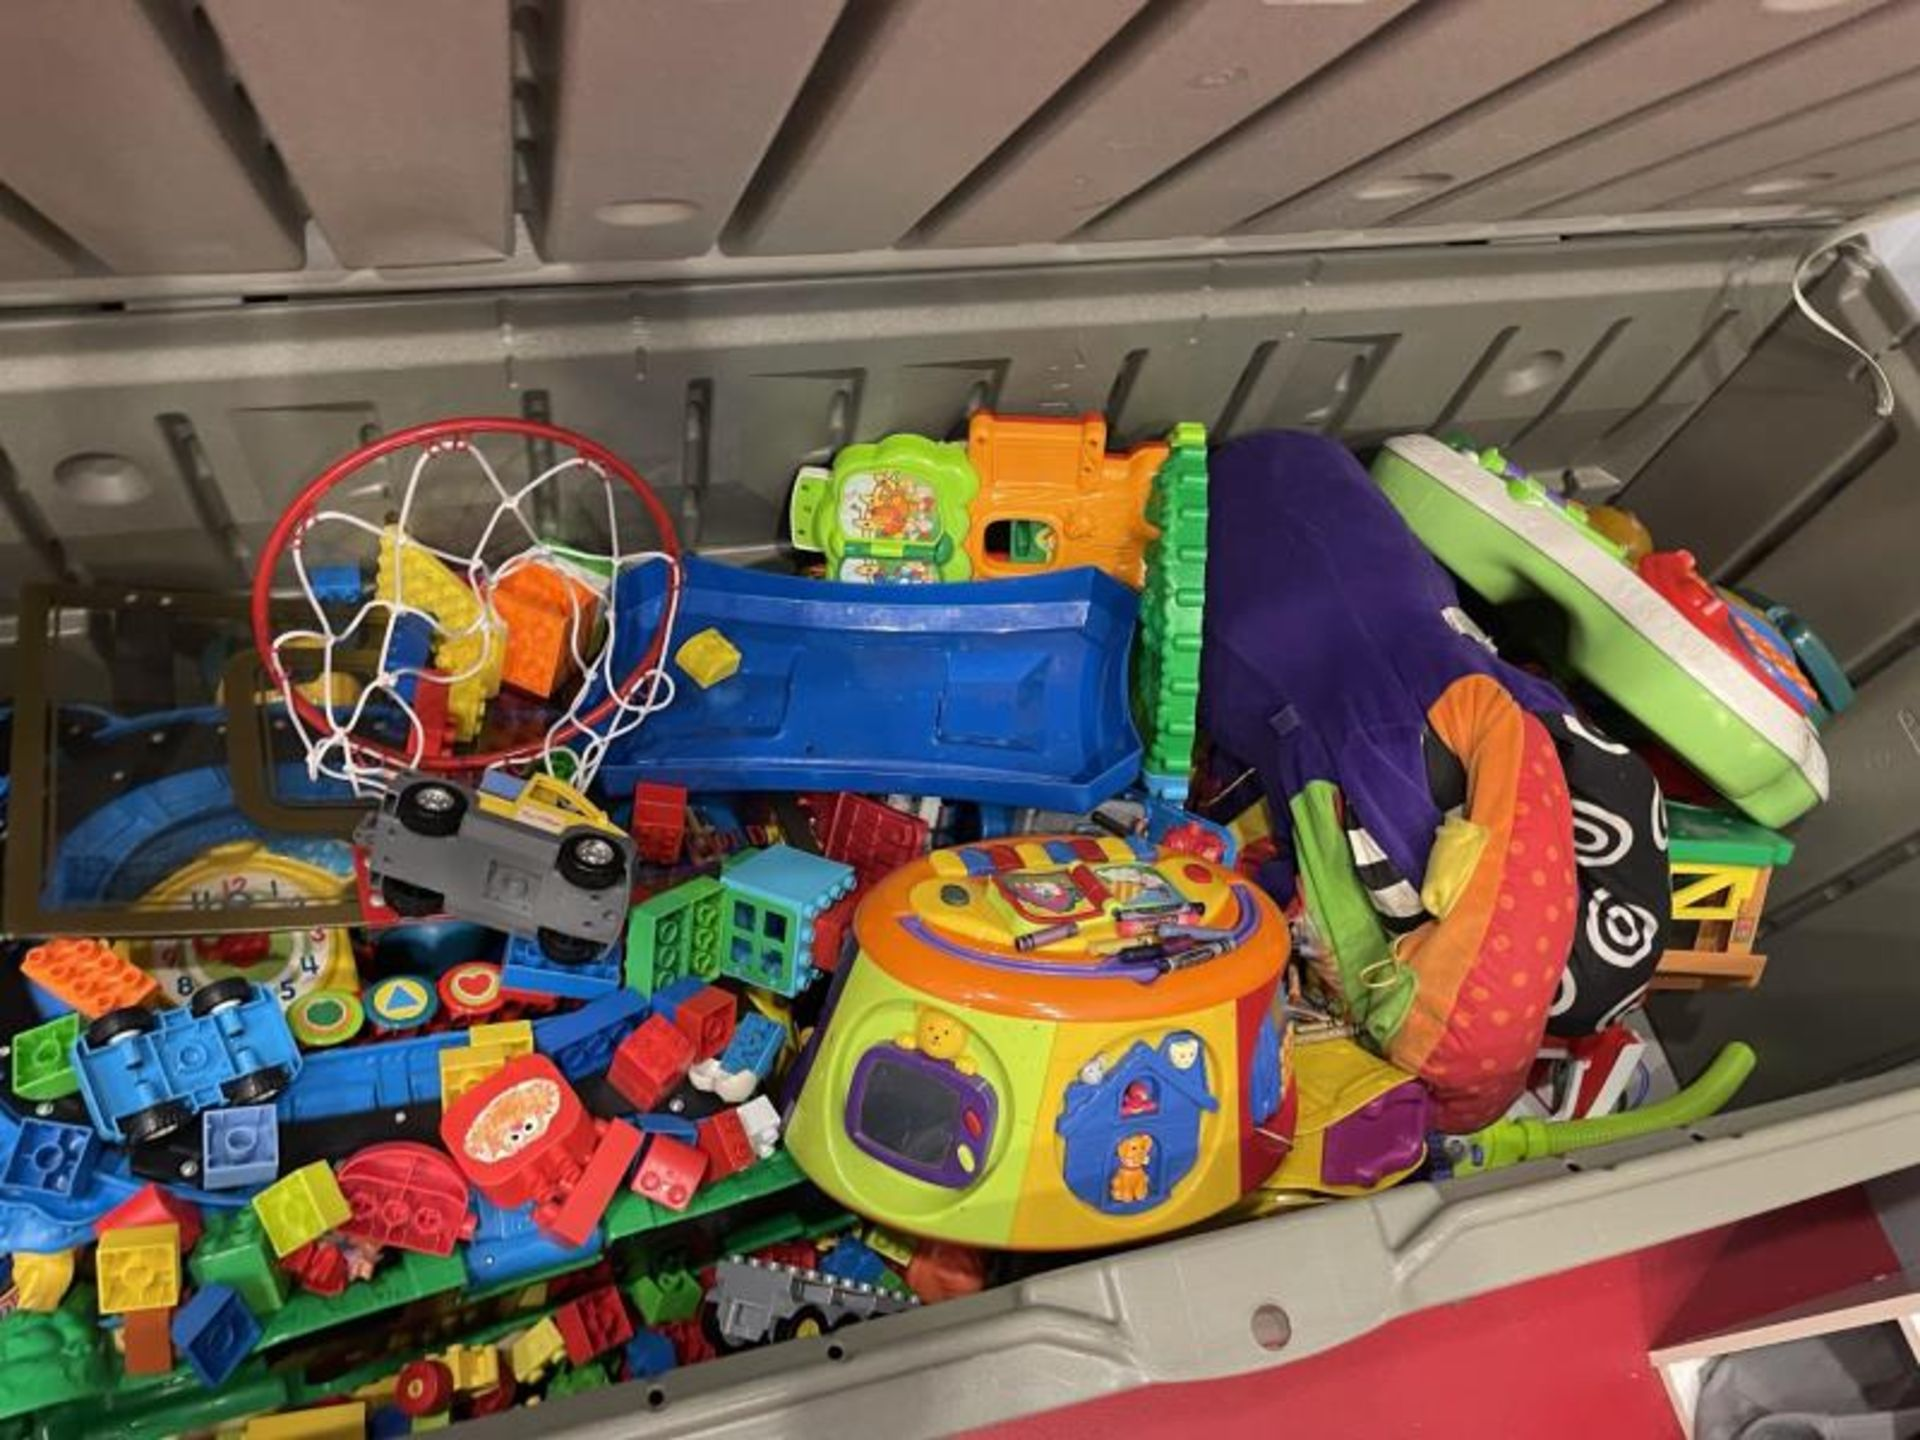 Group Lot of Children's Toys with Play Kitchen & Plastic Bins - Image 2 of 4